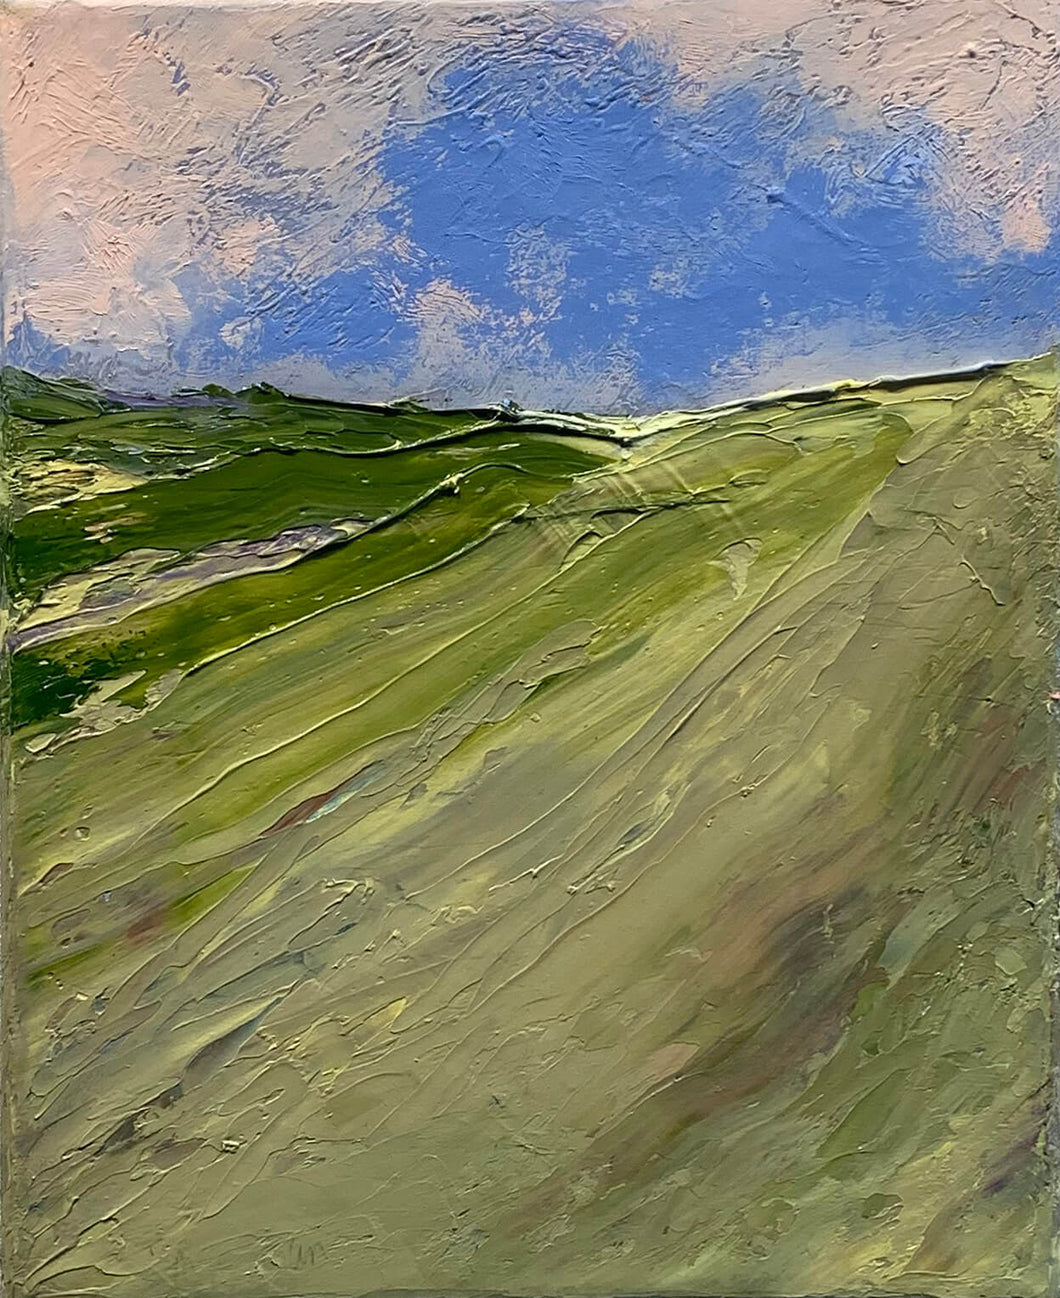 Dunes - by Artist Michael Marrinan